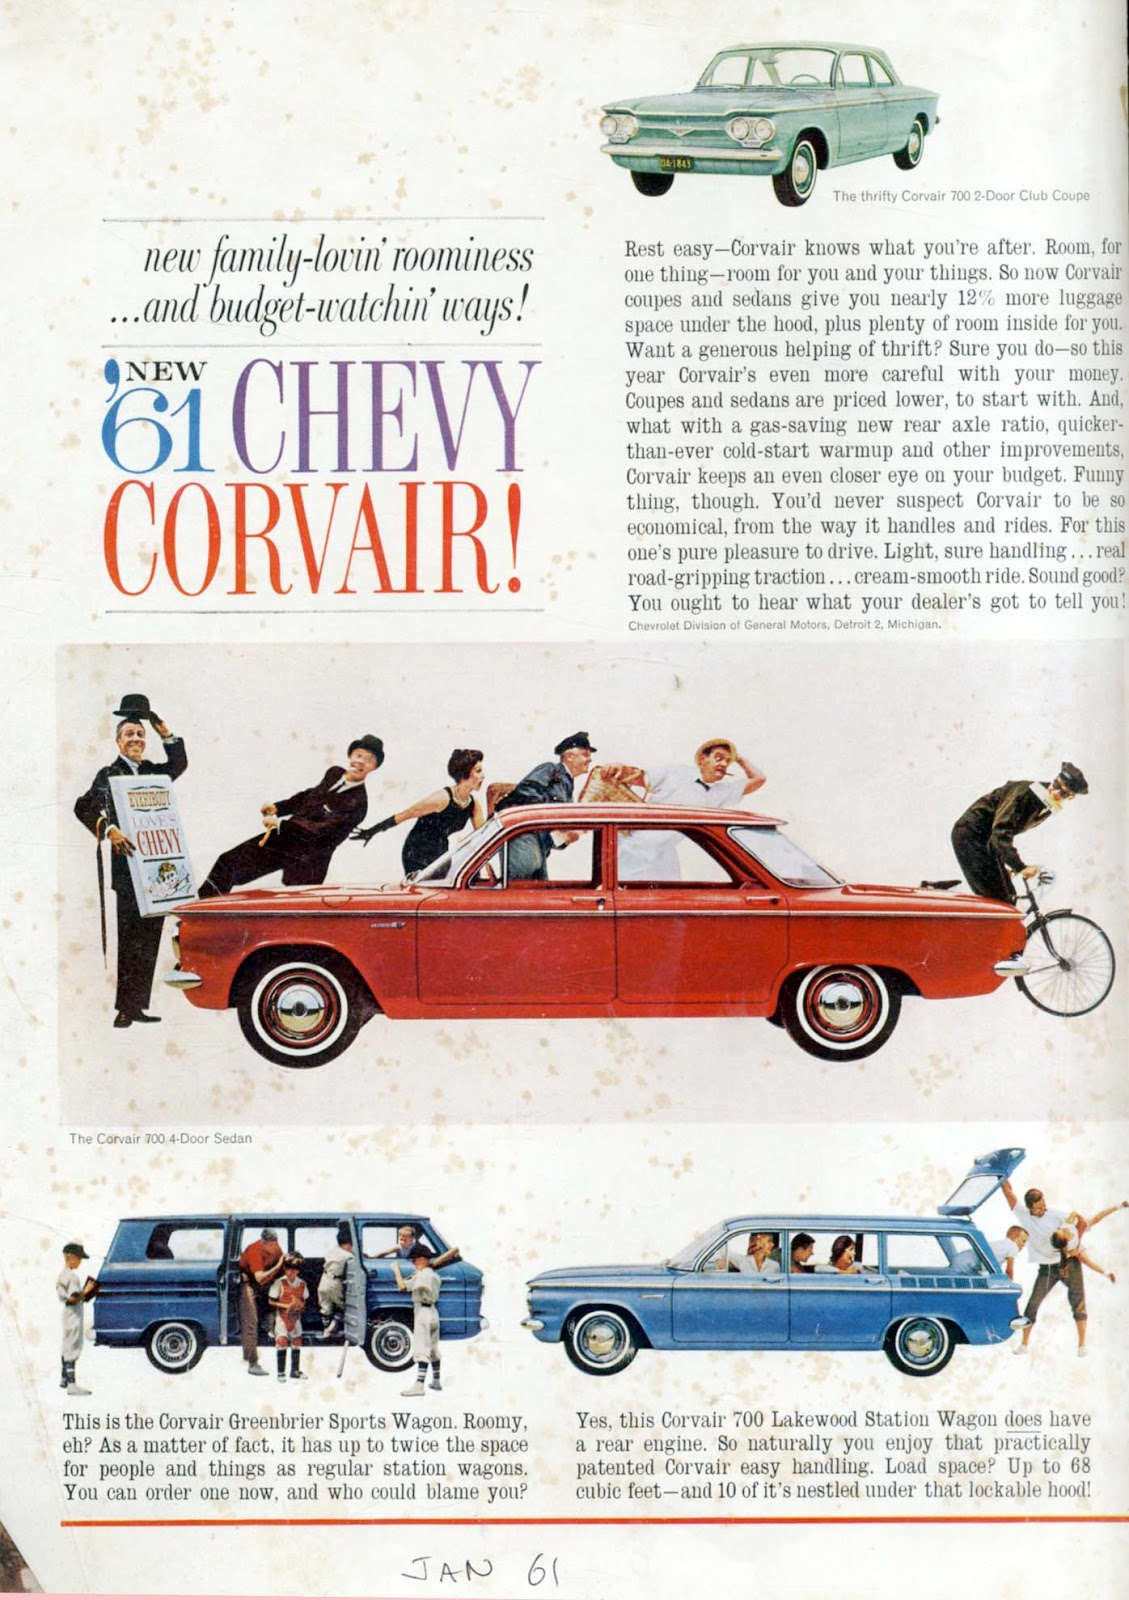 4335bc133a93c Labels: 1961, car advertising, Chevrolet Corvair, delivery boy, fuel  economy, peer admiration, roominess, sandwich man, tableau, white background